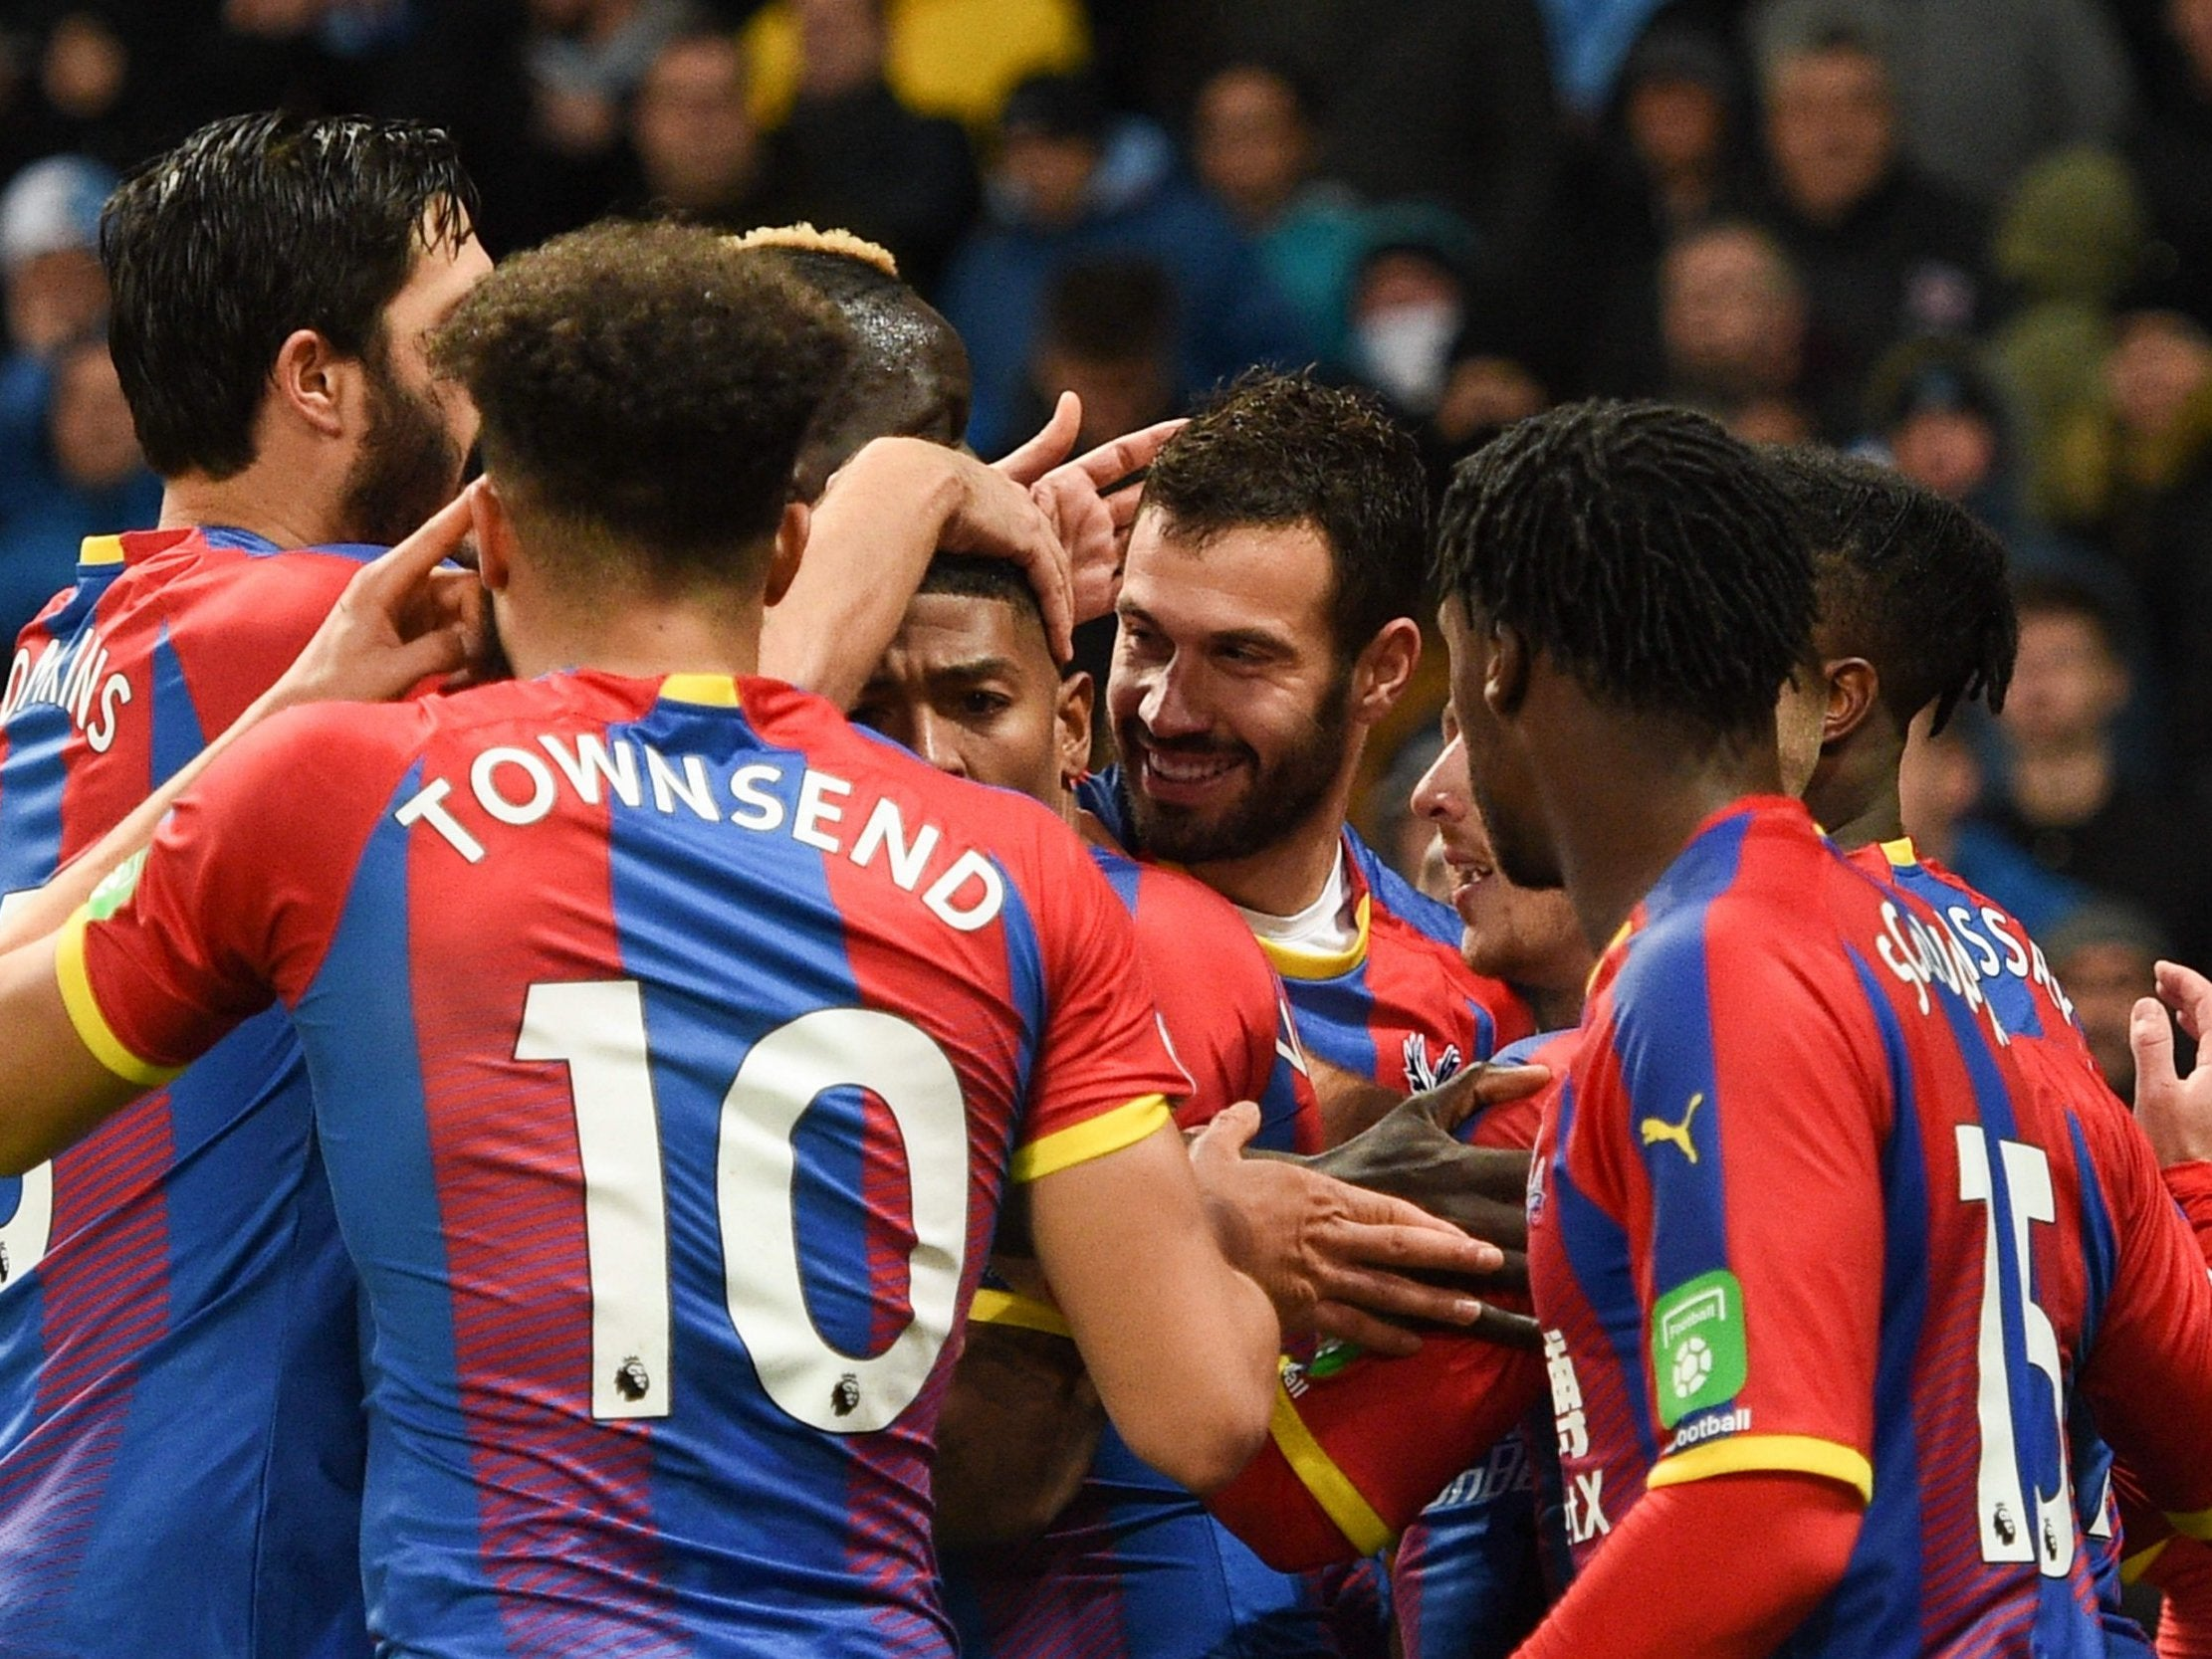 Manchester City Vs Crystal Palace Stunning Defeat Hands Liverpool The Edge In Title Race The Independent